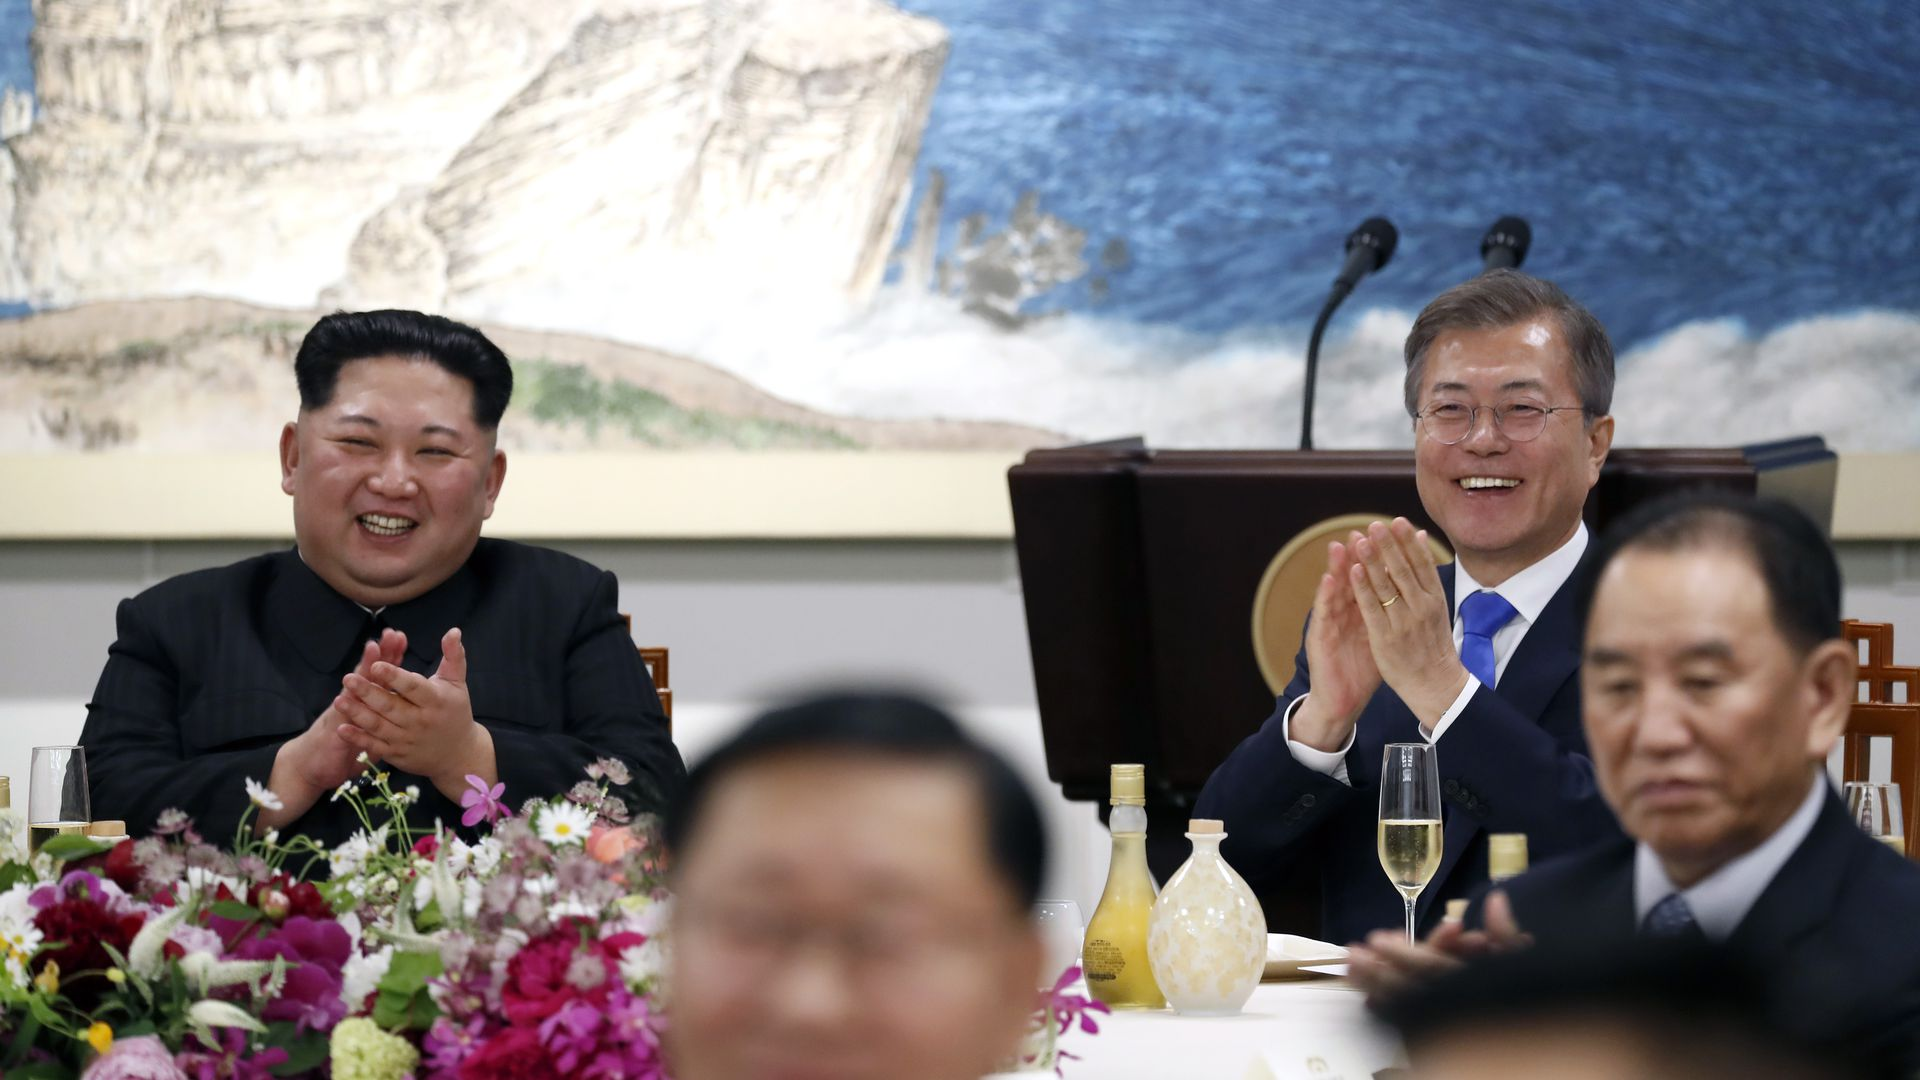 North Korean leader Kim Jong Un (L) and South Korean President Moon Jae-in (R) attend the Inter-Korean Summit dinner on April 27, 2018.